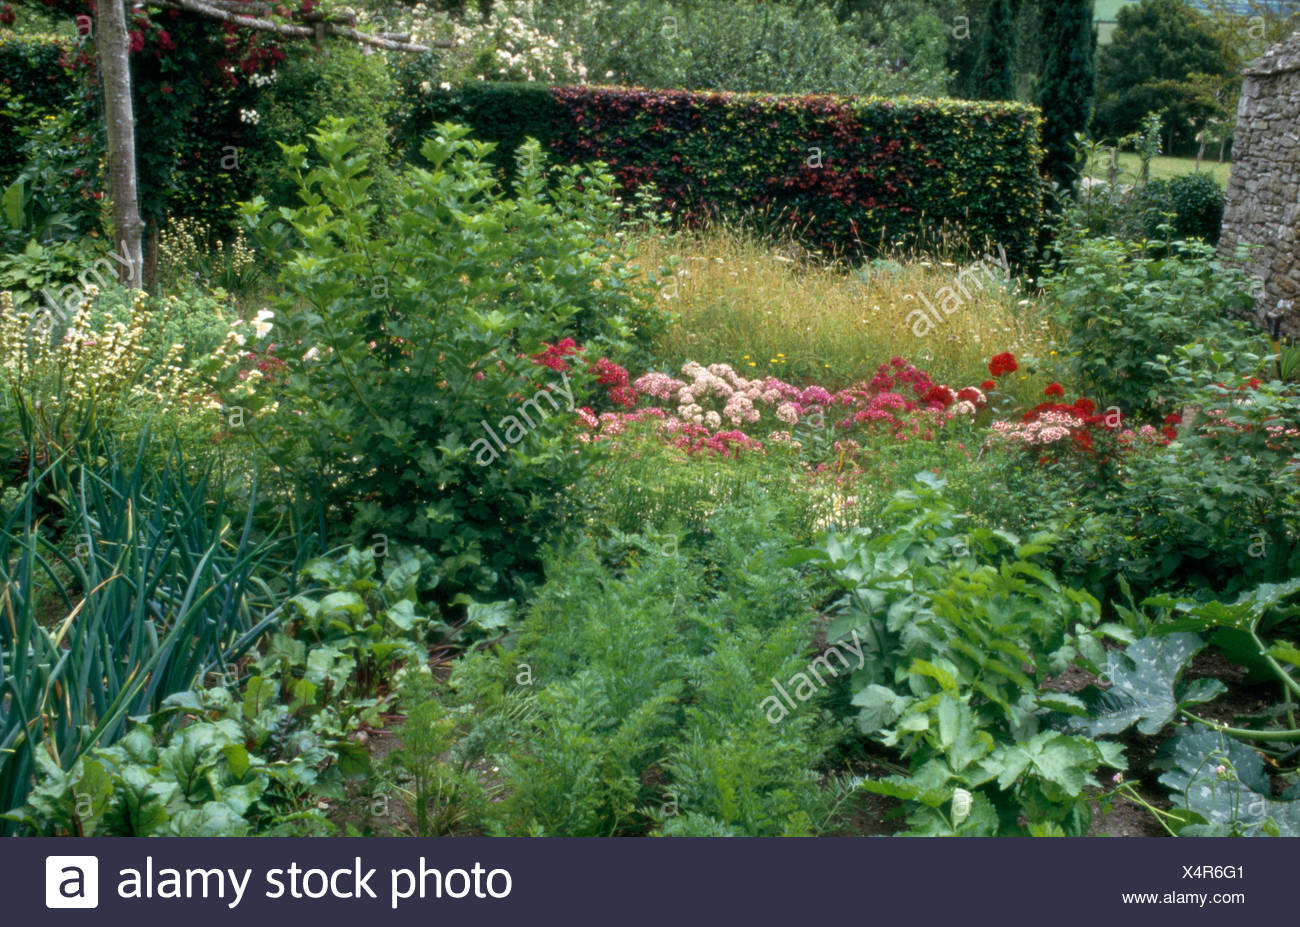 Rows of carrots and onions in a country vegetable garden with pink Sweet Williams - Stock Image